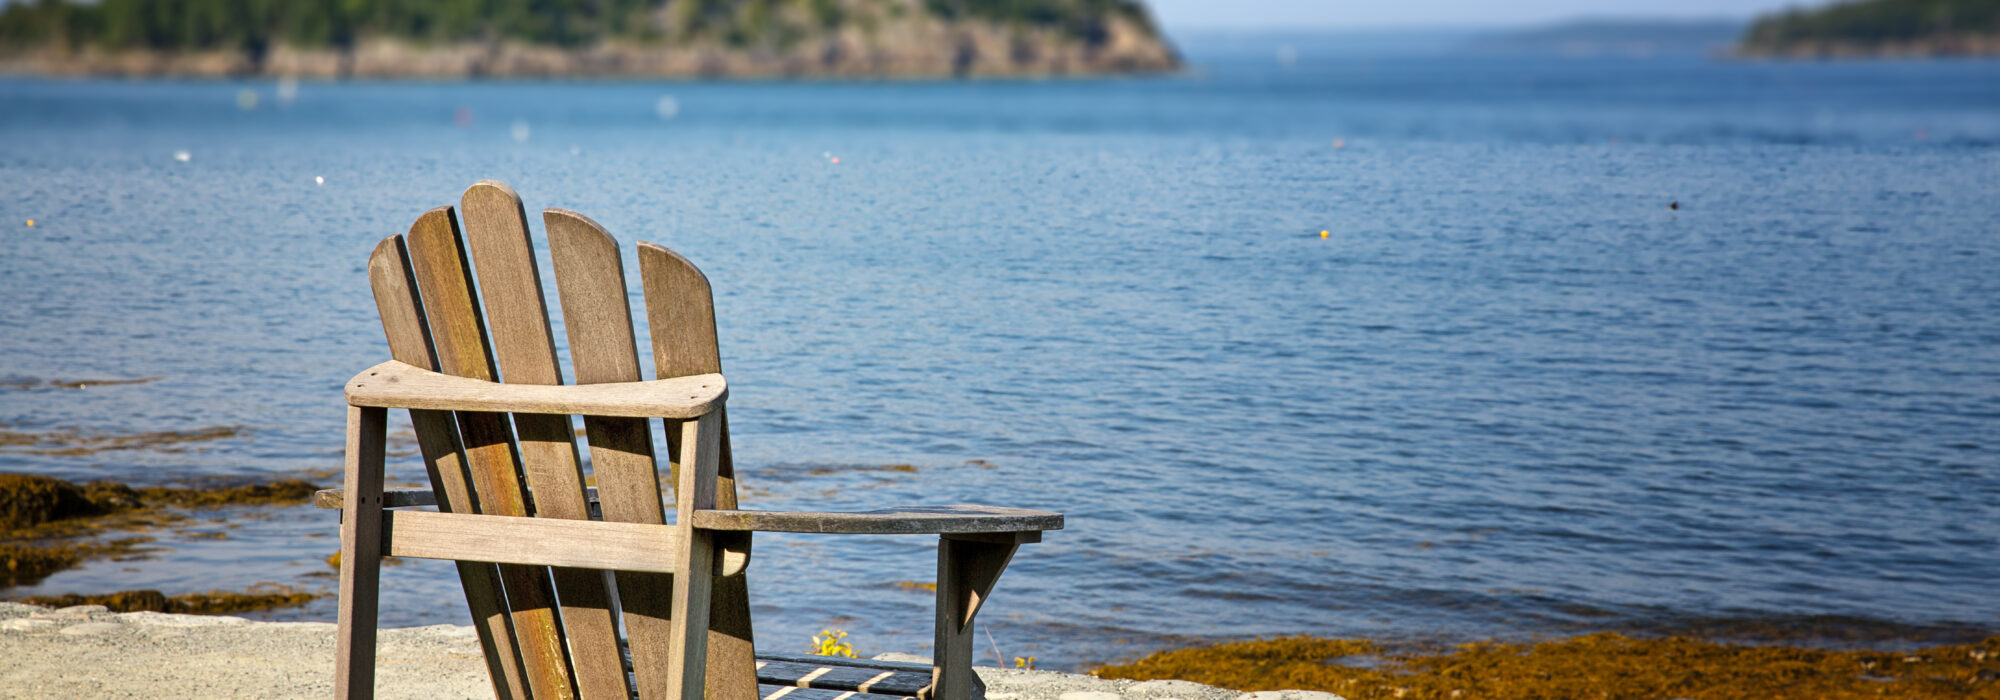 Fun things to do in Midcoast Maine